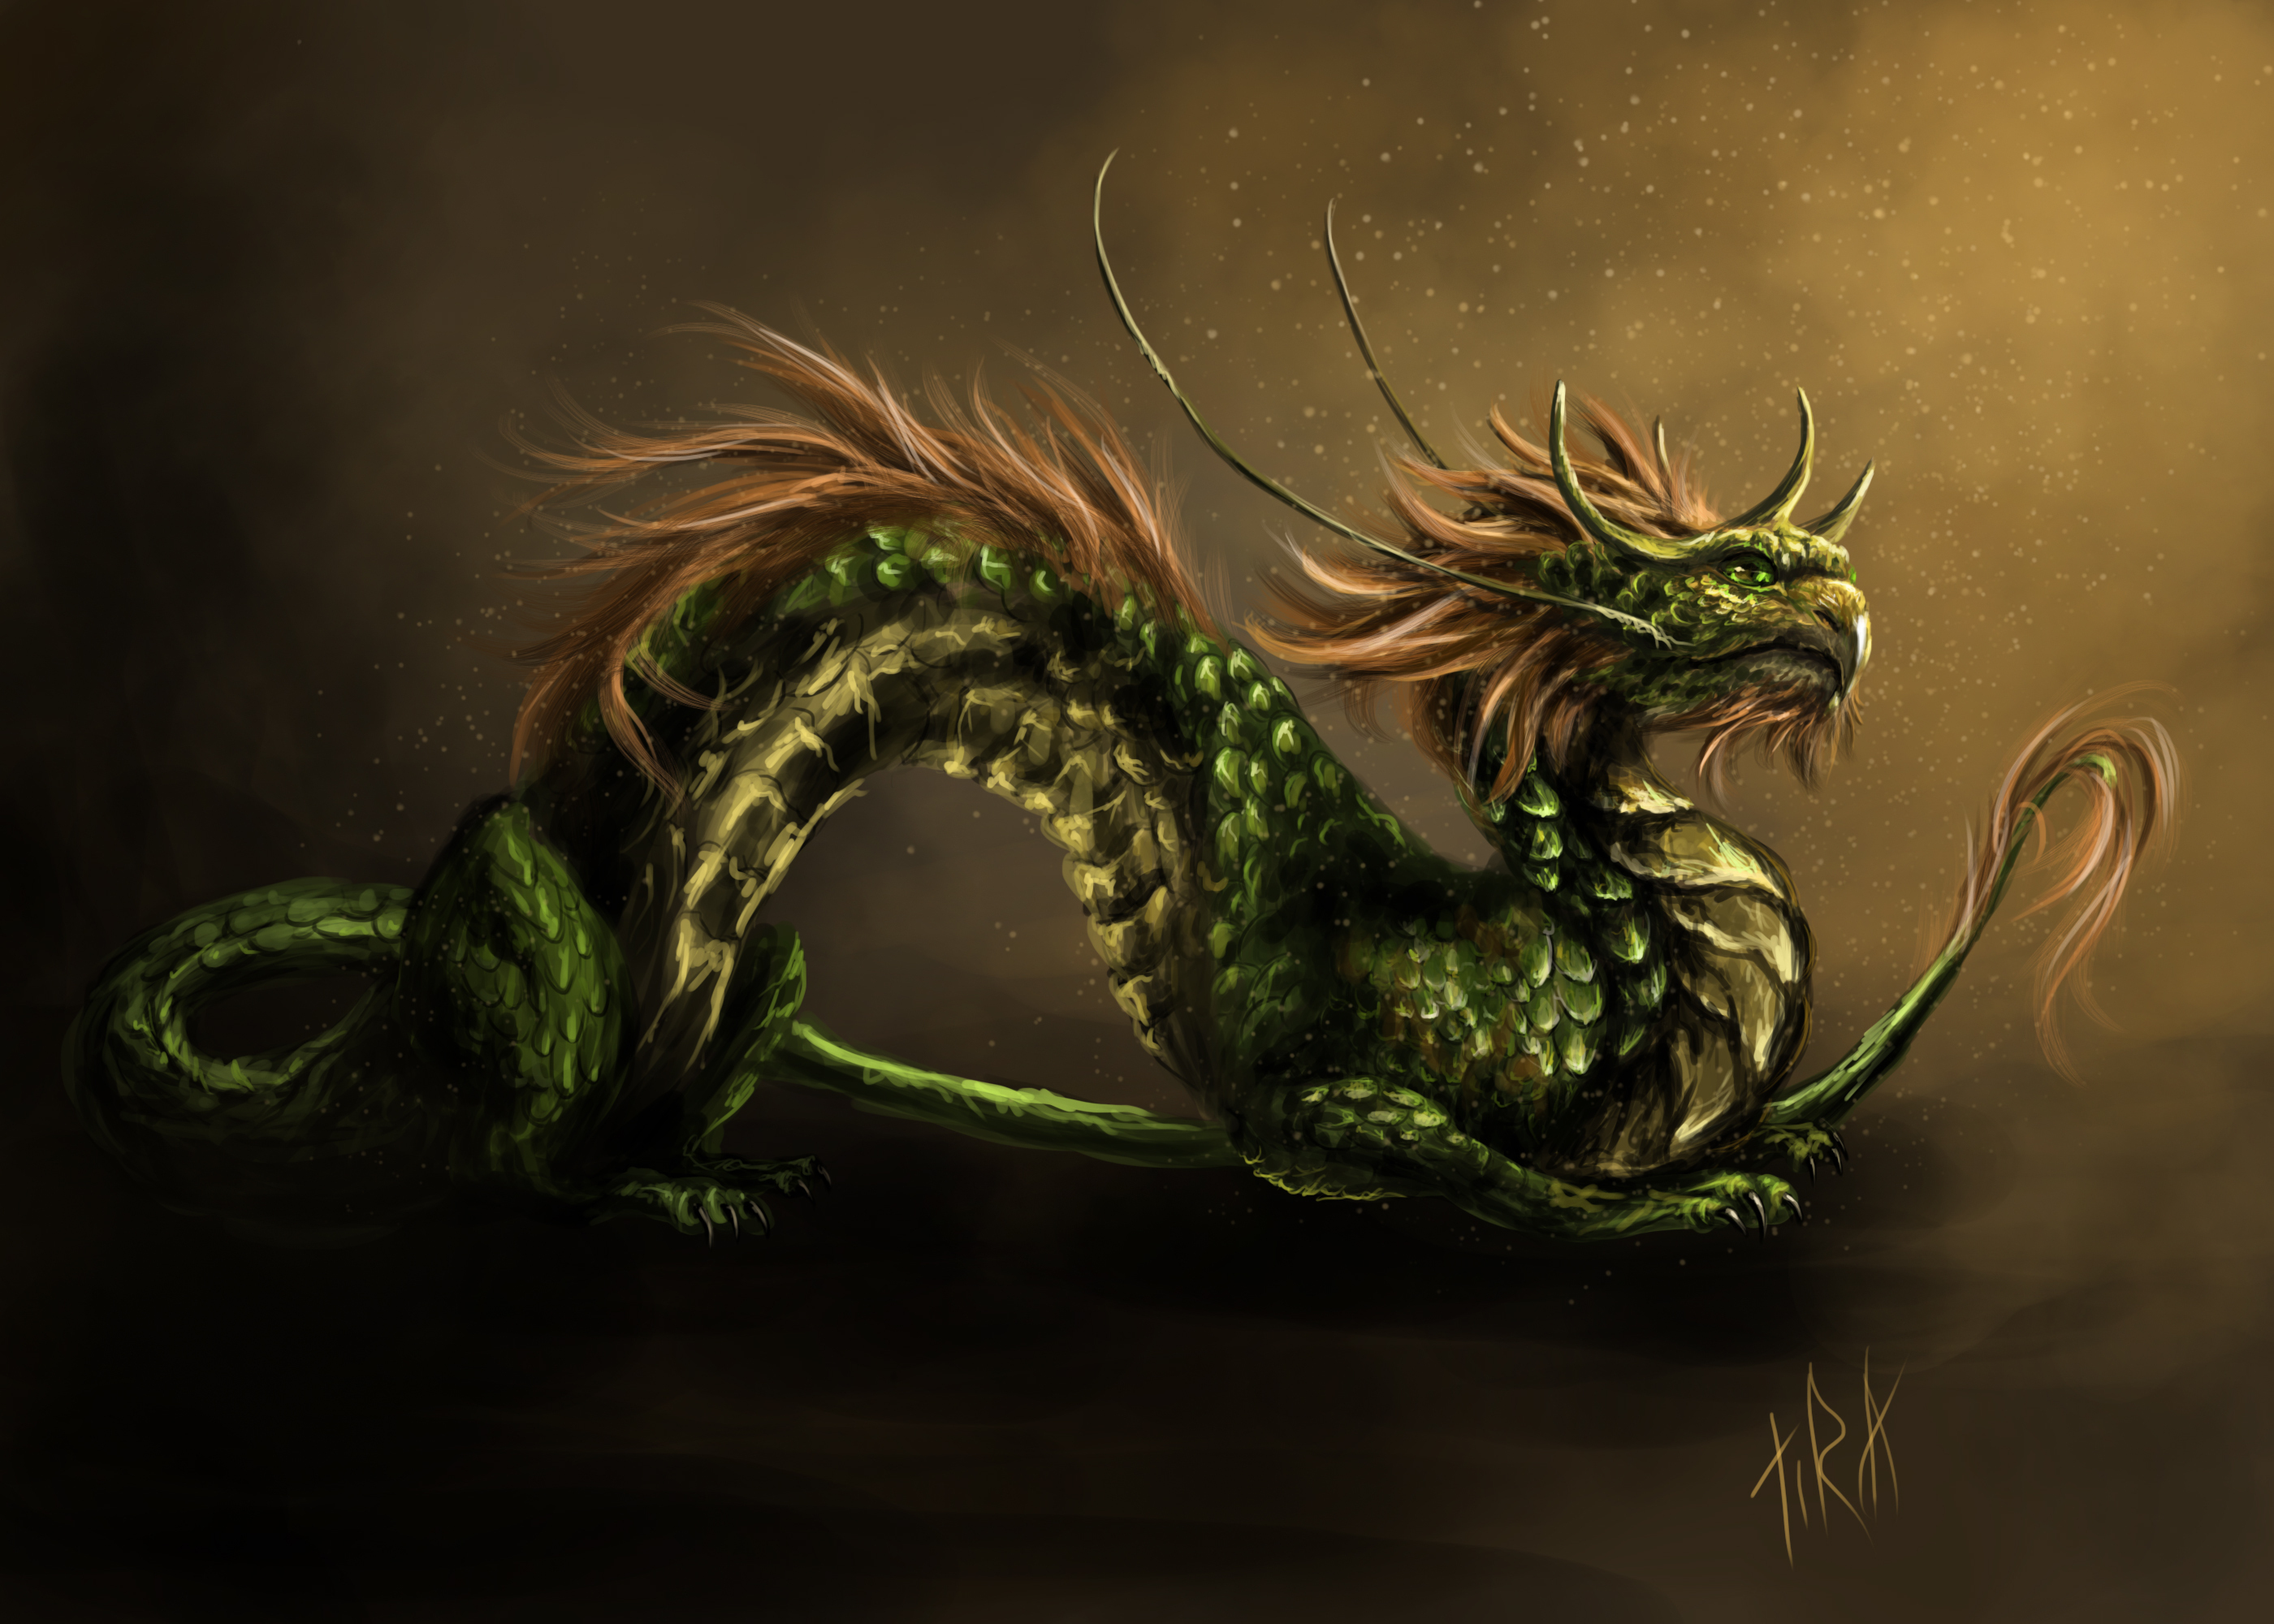 Dragon hd wallpaper background image 2800x2000 id 289937 wallpaper abyss - Dragon wallpaper 3d ...